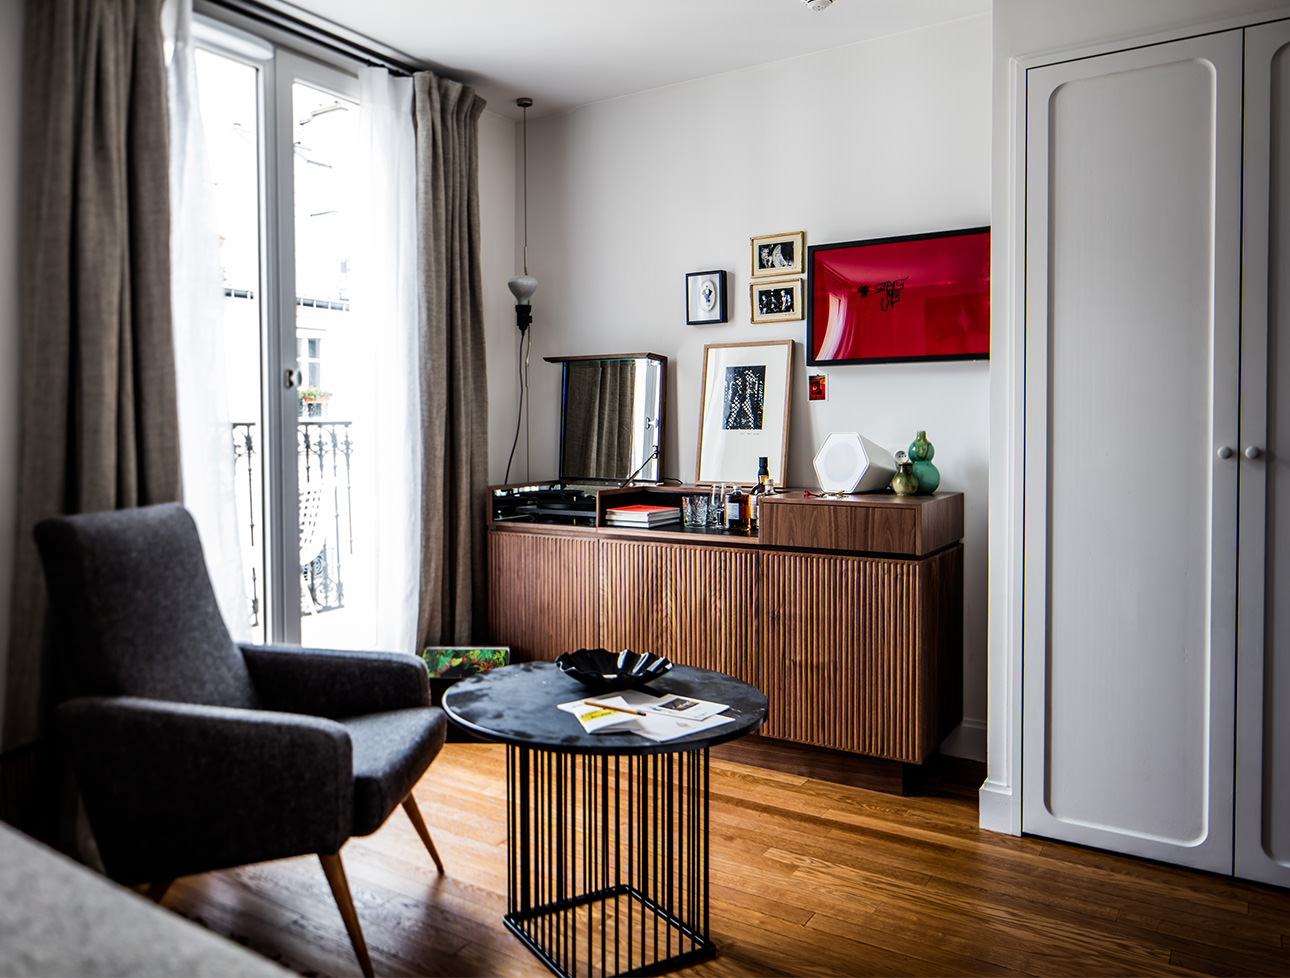 midcentury-hotel-room-decor-le-pigalle-hotel-paris